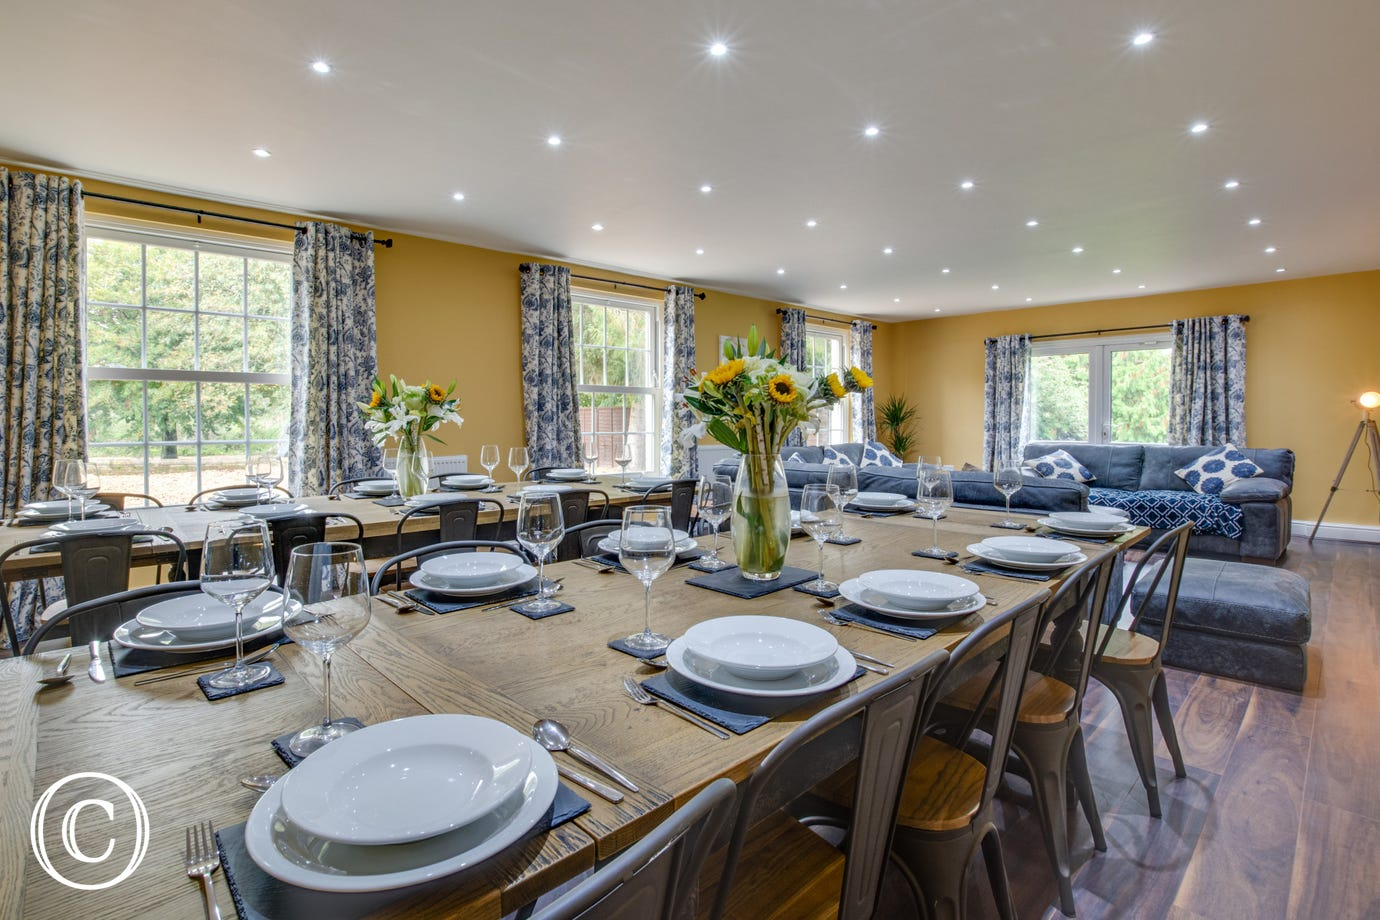 Dining Area with large dining table & chairs & comfortable seating